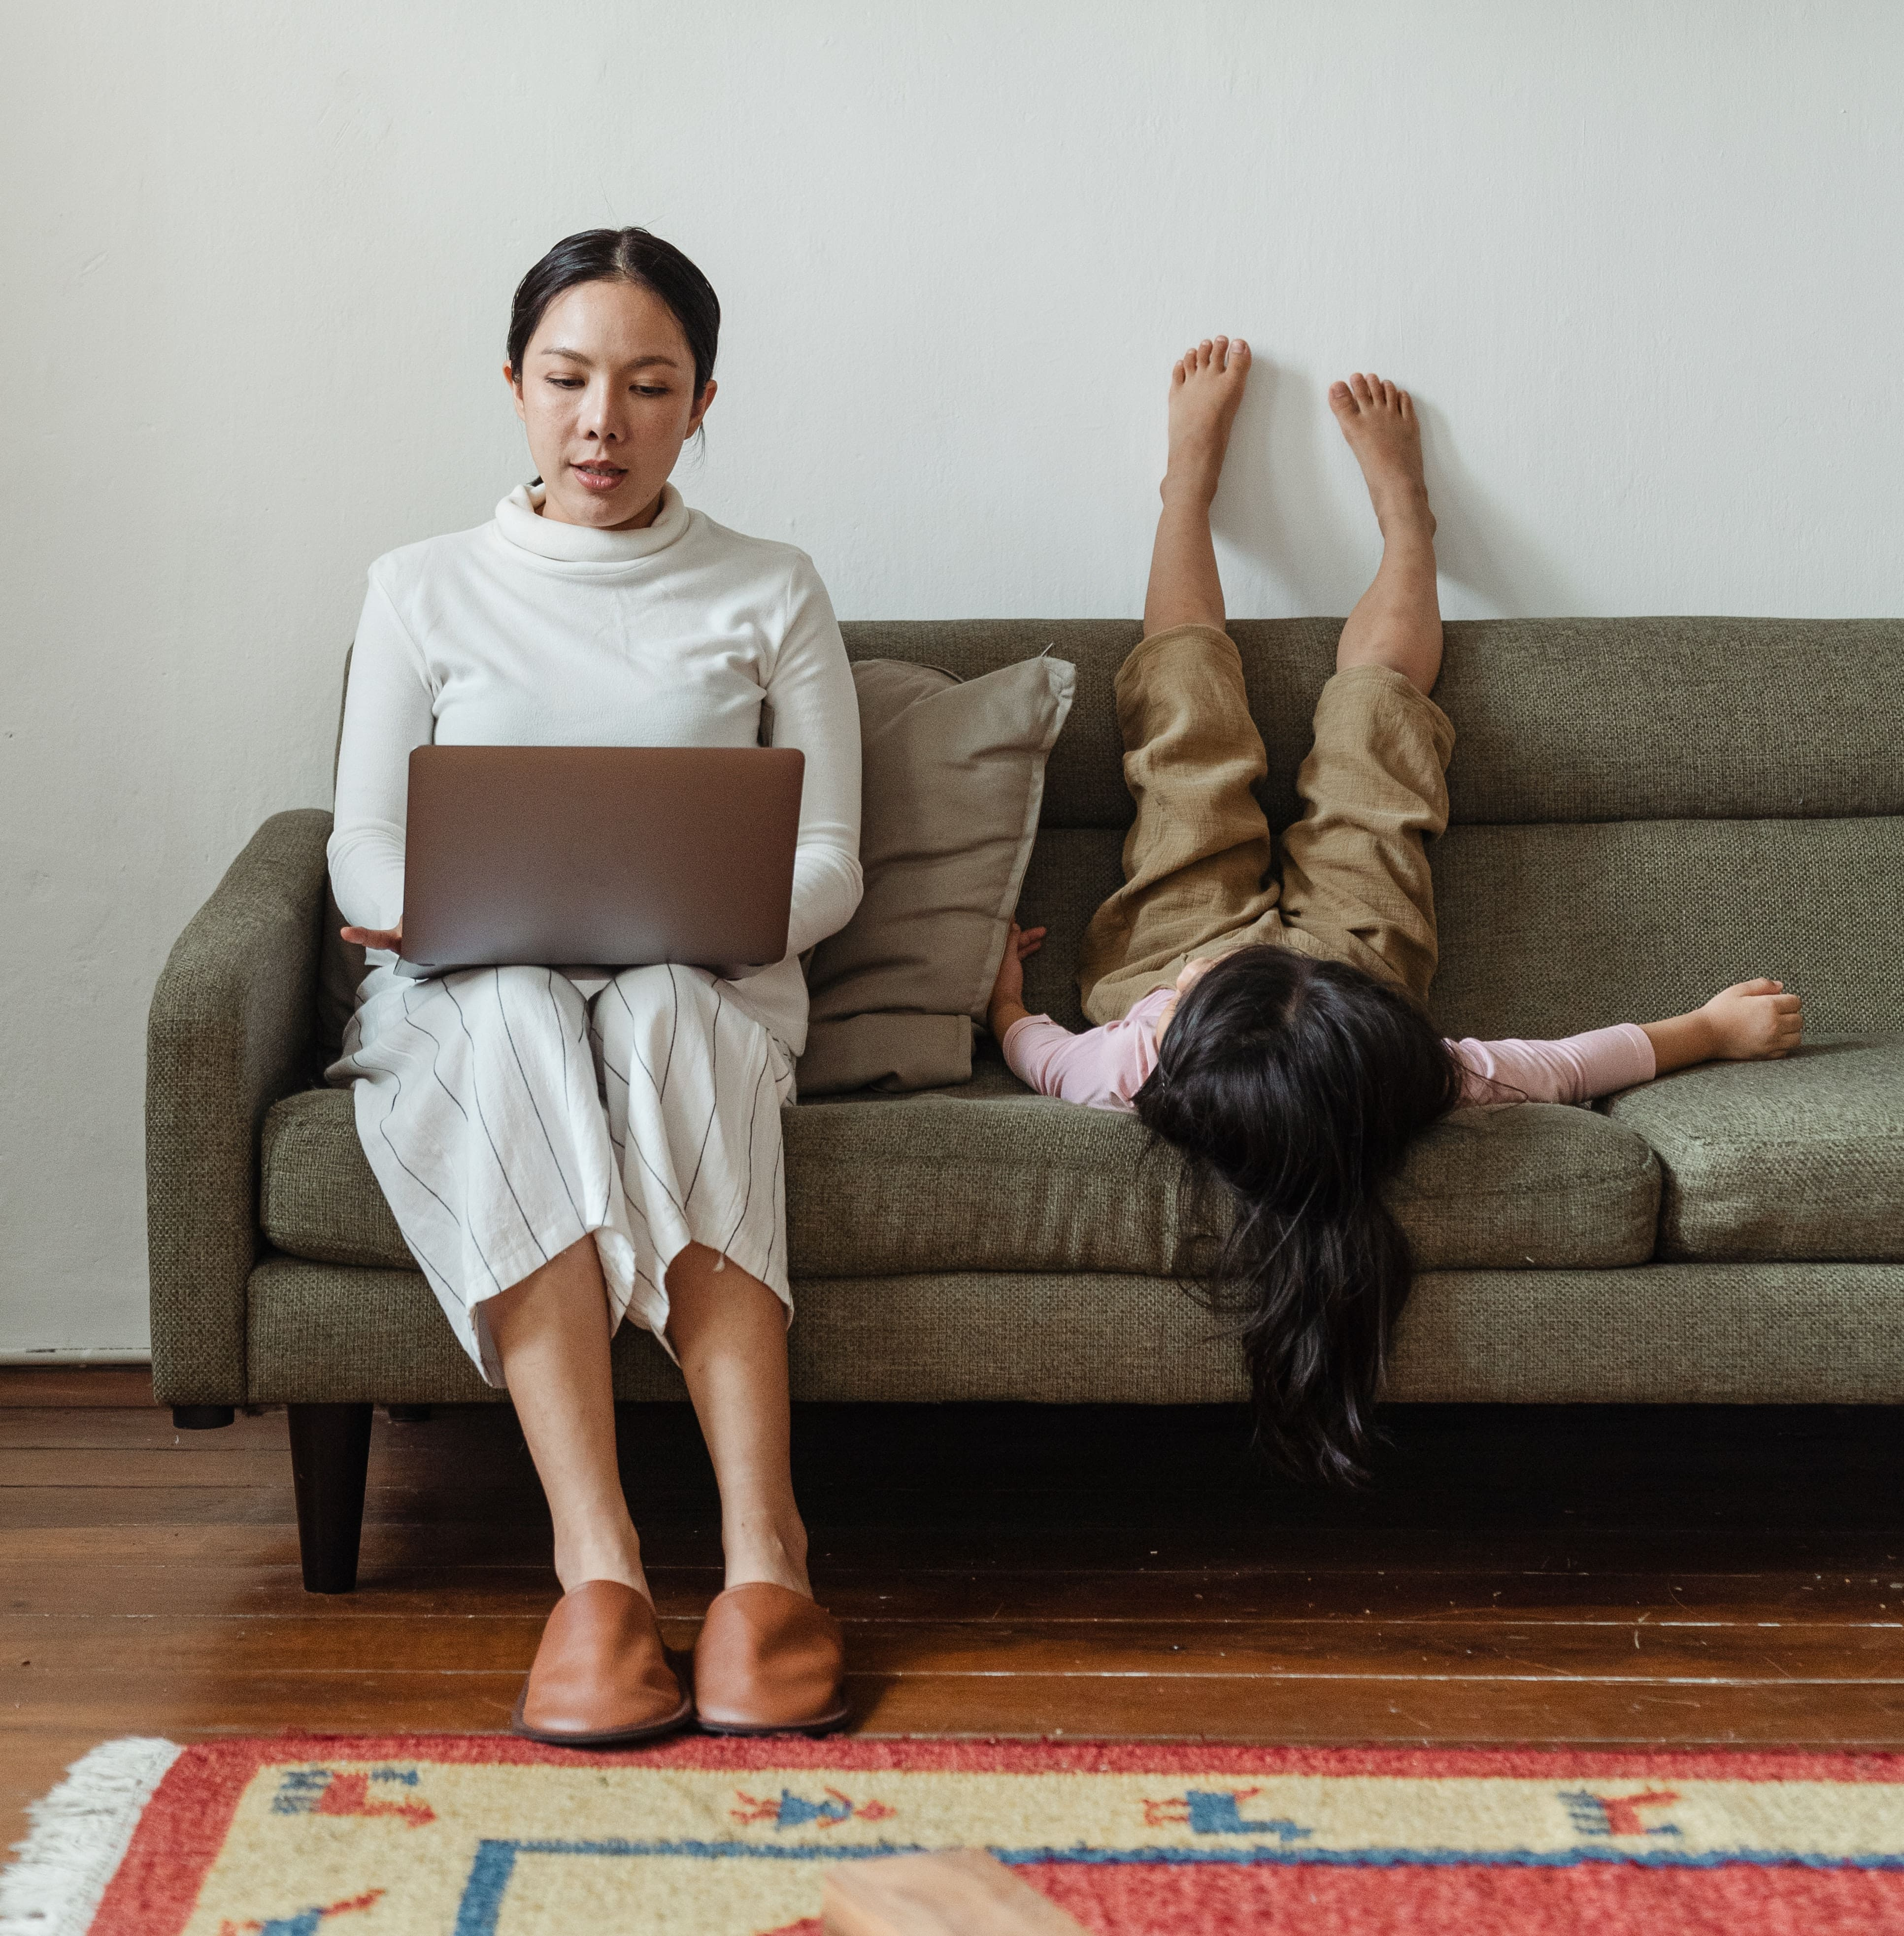 2 min Finding Success While Working From Home